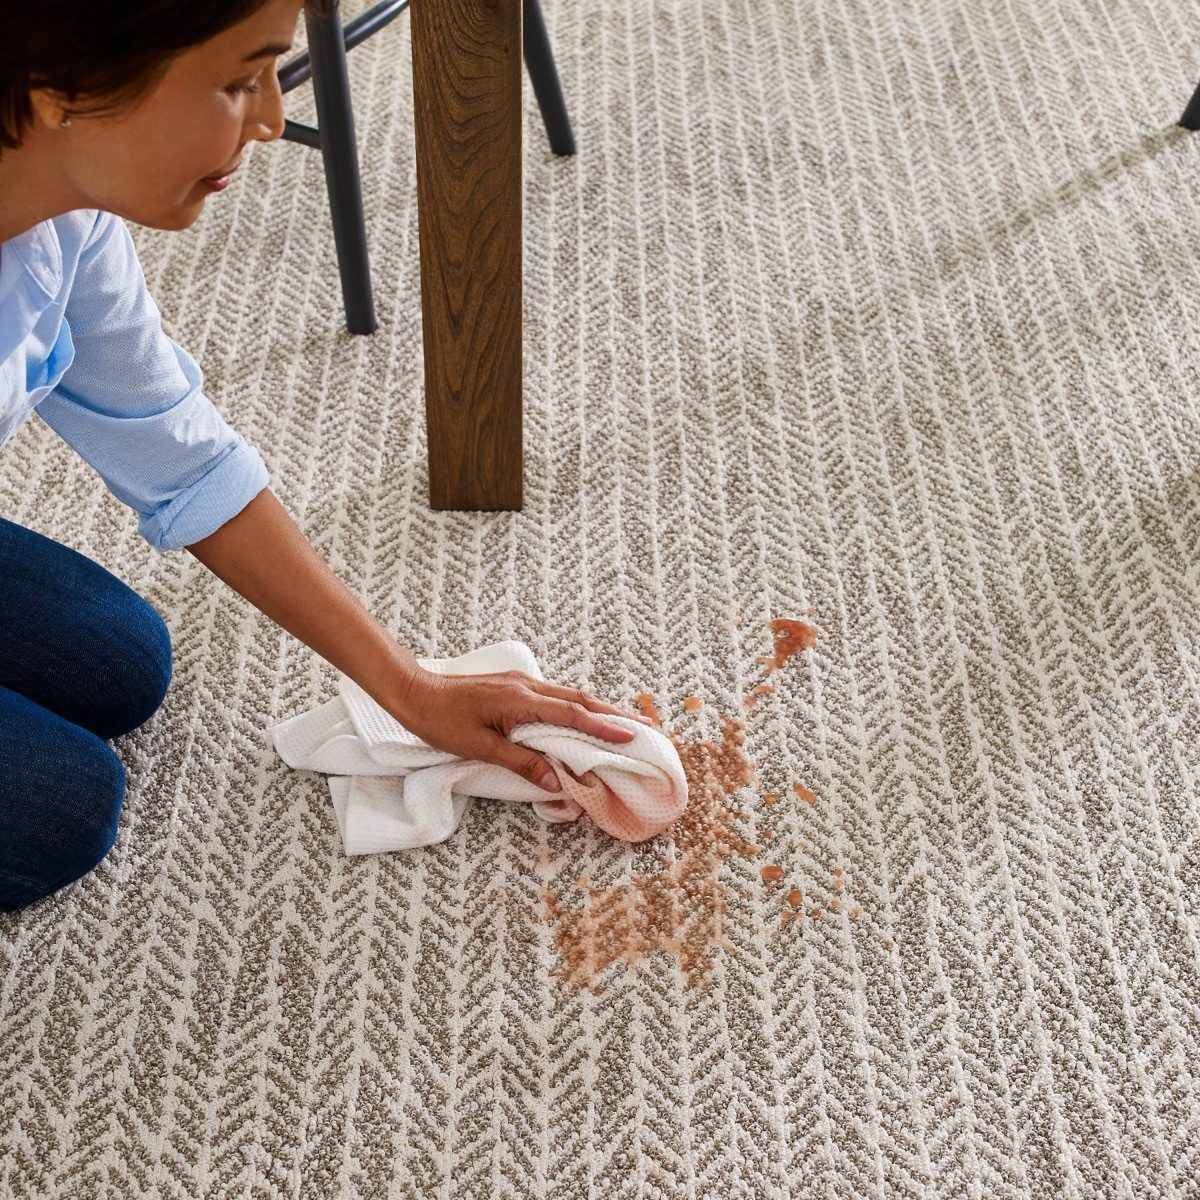 Stain cleaning tips in The Woodlands, TX | Roberts Carpet & Fine Floors